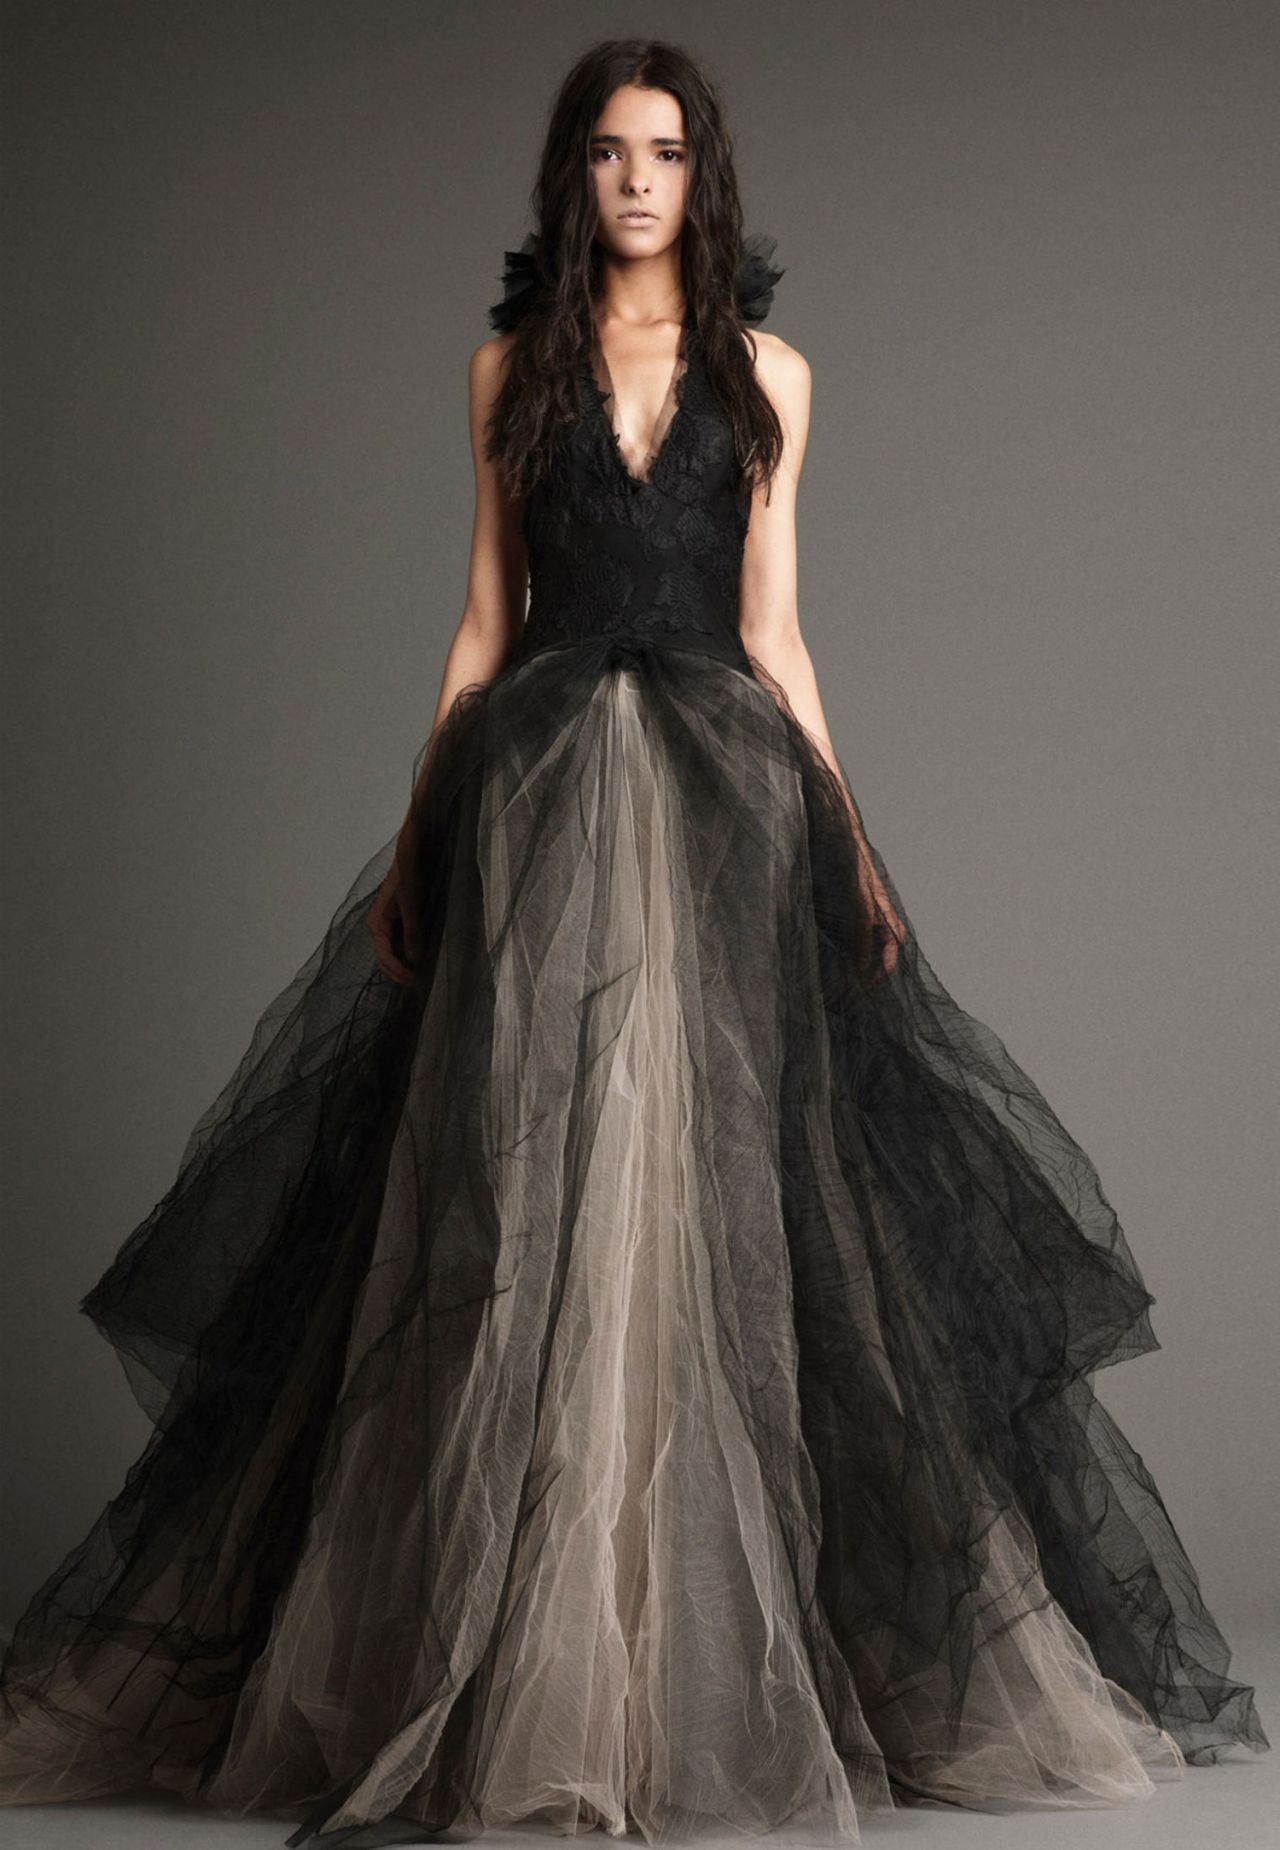 Genial Find This Pin And More On Wedding Ideas Collection. Black Wedding Dresses  Vera Wang ...